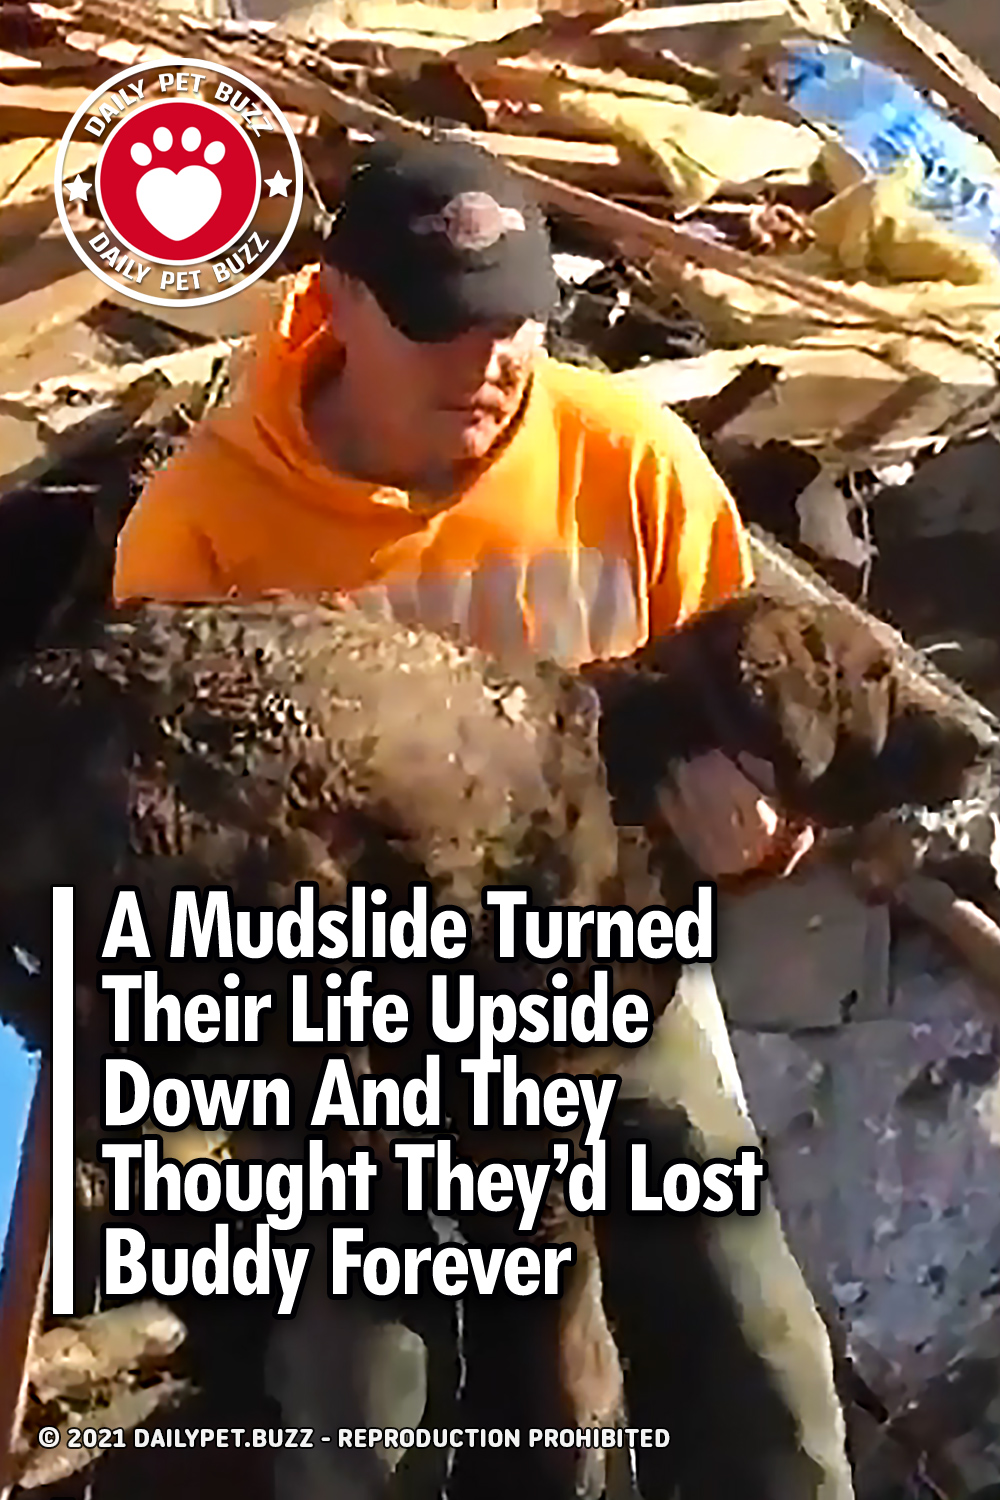 A Mudslide Turned Their Life Upside Down And They Thought They\'d Lost Buddy Forever